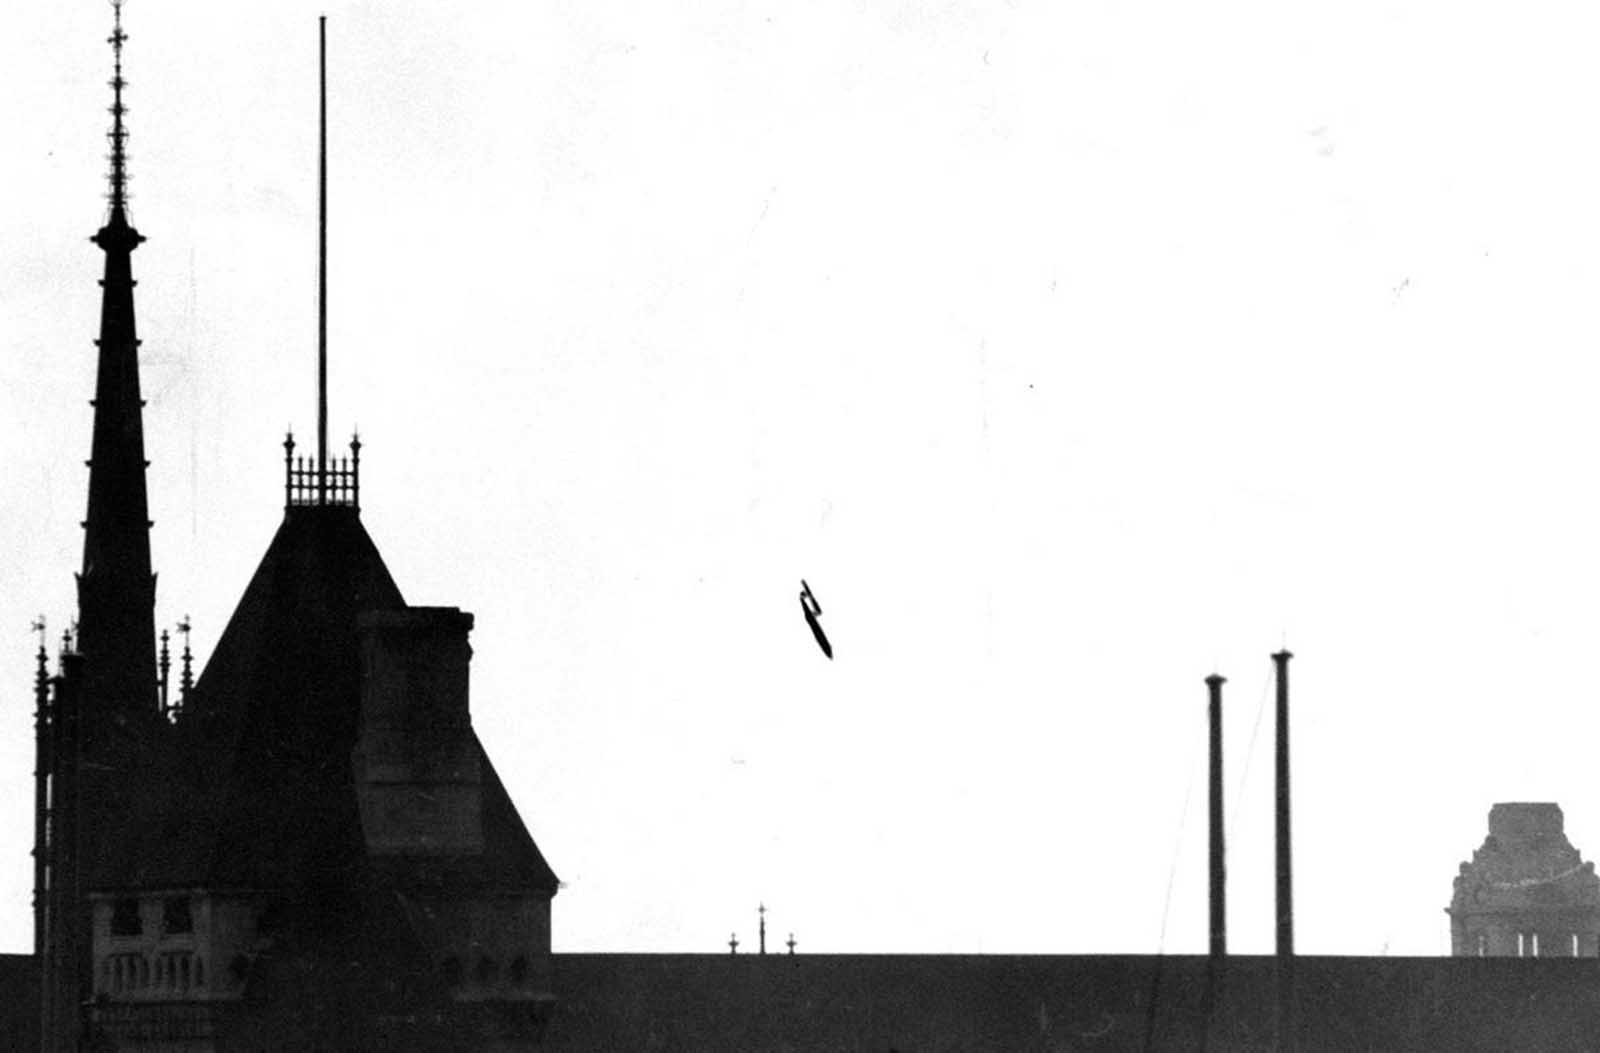 Across the Channel, Britain was being struck by continual bombardment by thousands of V-1 and V-2 bombs launched from German-controlled territory. This photo, taken from a fleet street roof-top, shows a V-1 flying bomb